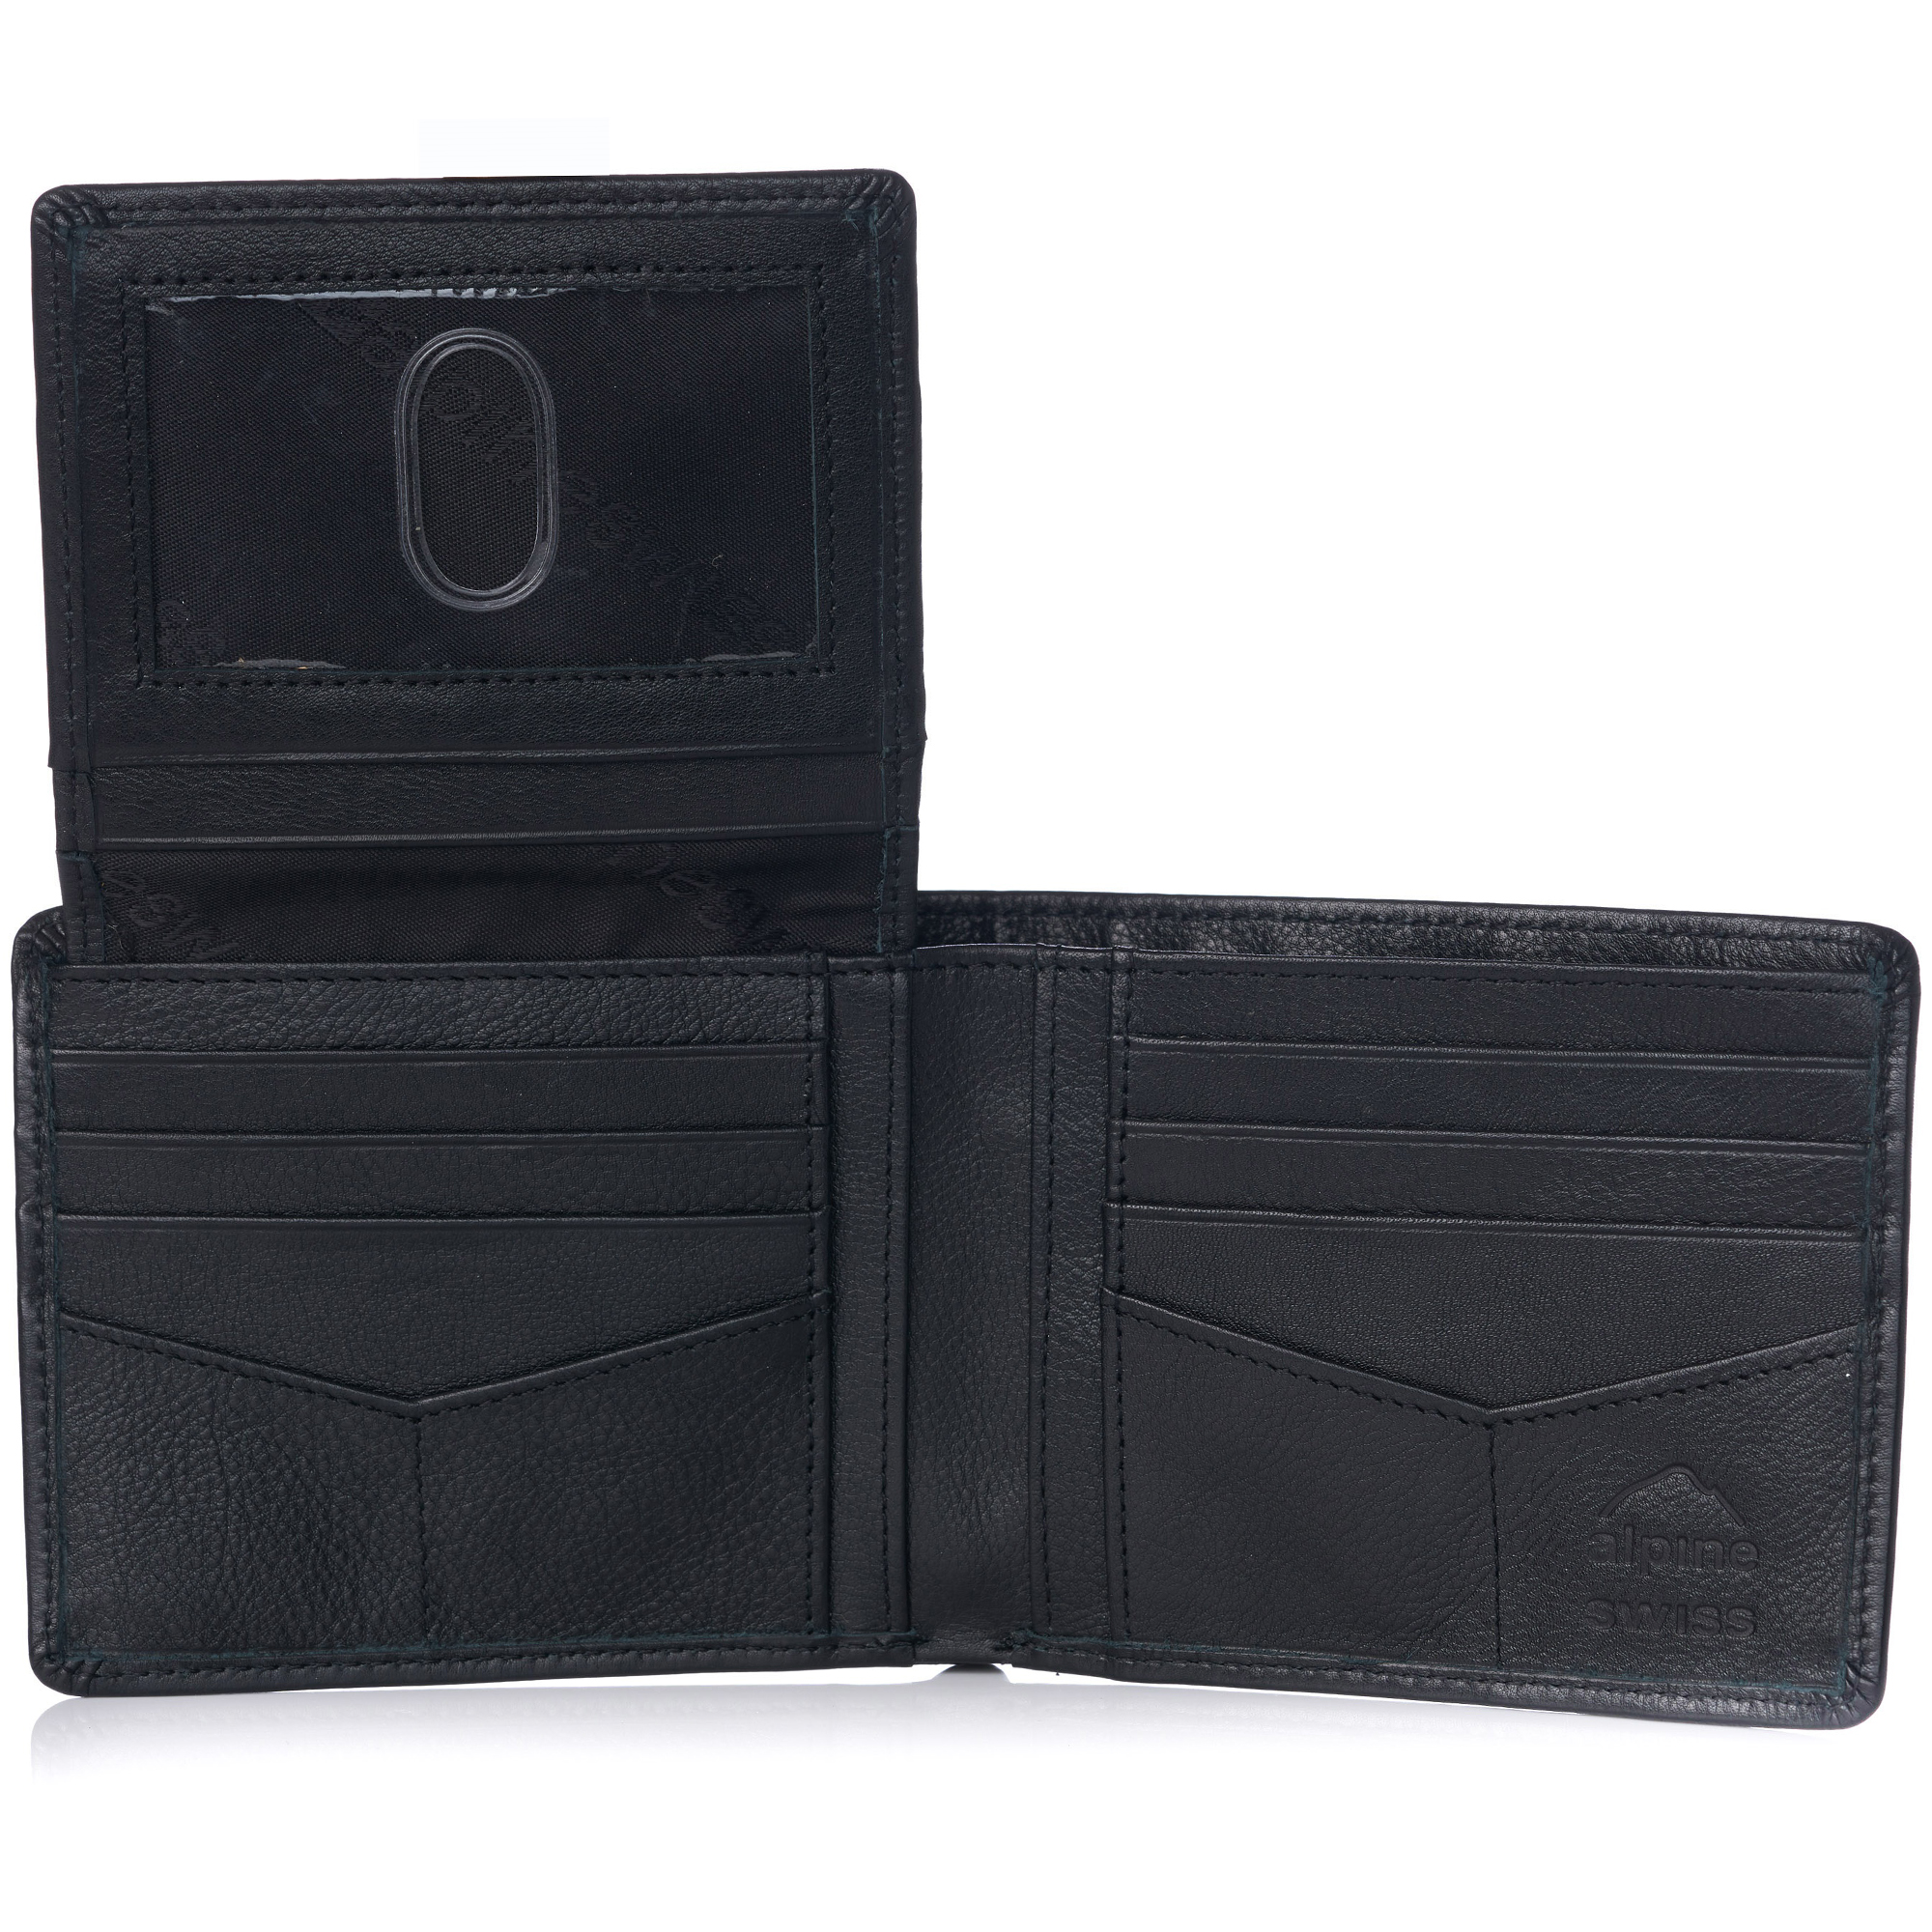 miniature 90 - Alpine-Swiss-RFID-Mens-Wallet-Deluxe-Capacity-Passcase-Bifold-Two-Bill-Sections